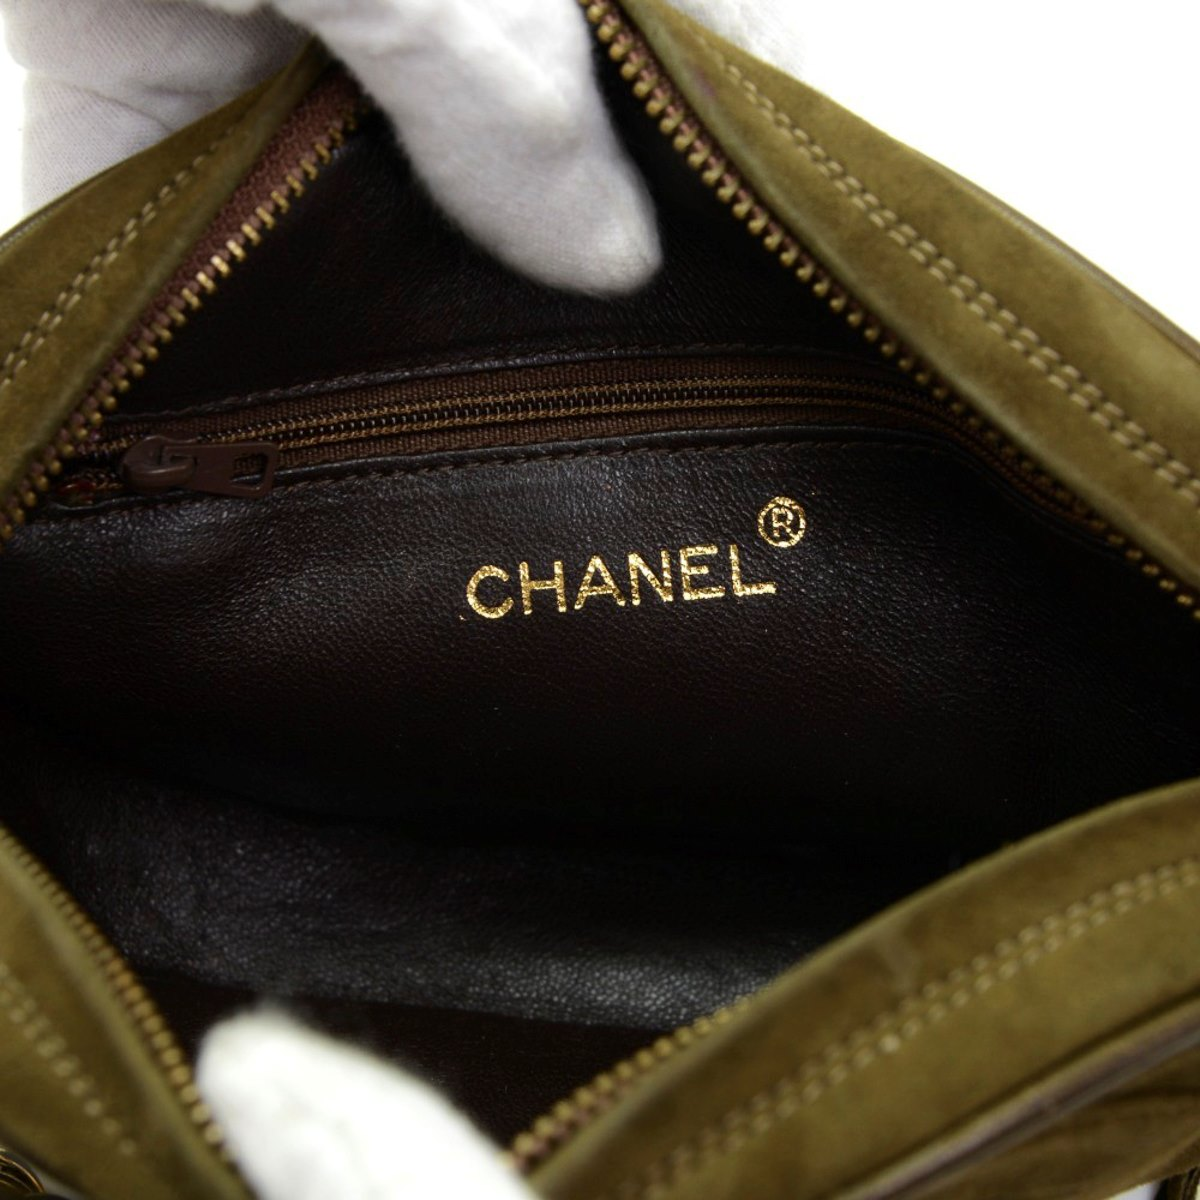 chanel timeless shoulder bag 1990 hb344 second hand handbags. Black Bedroom Furniture Sets. Home Design Ideas